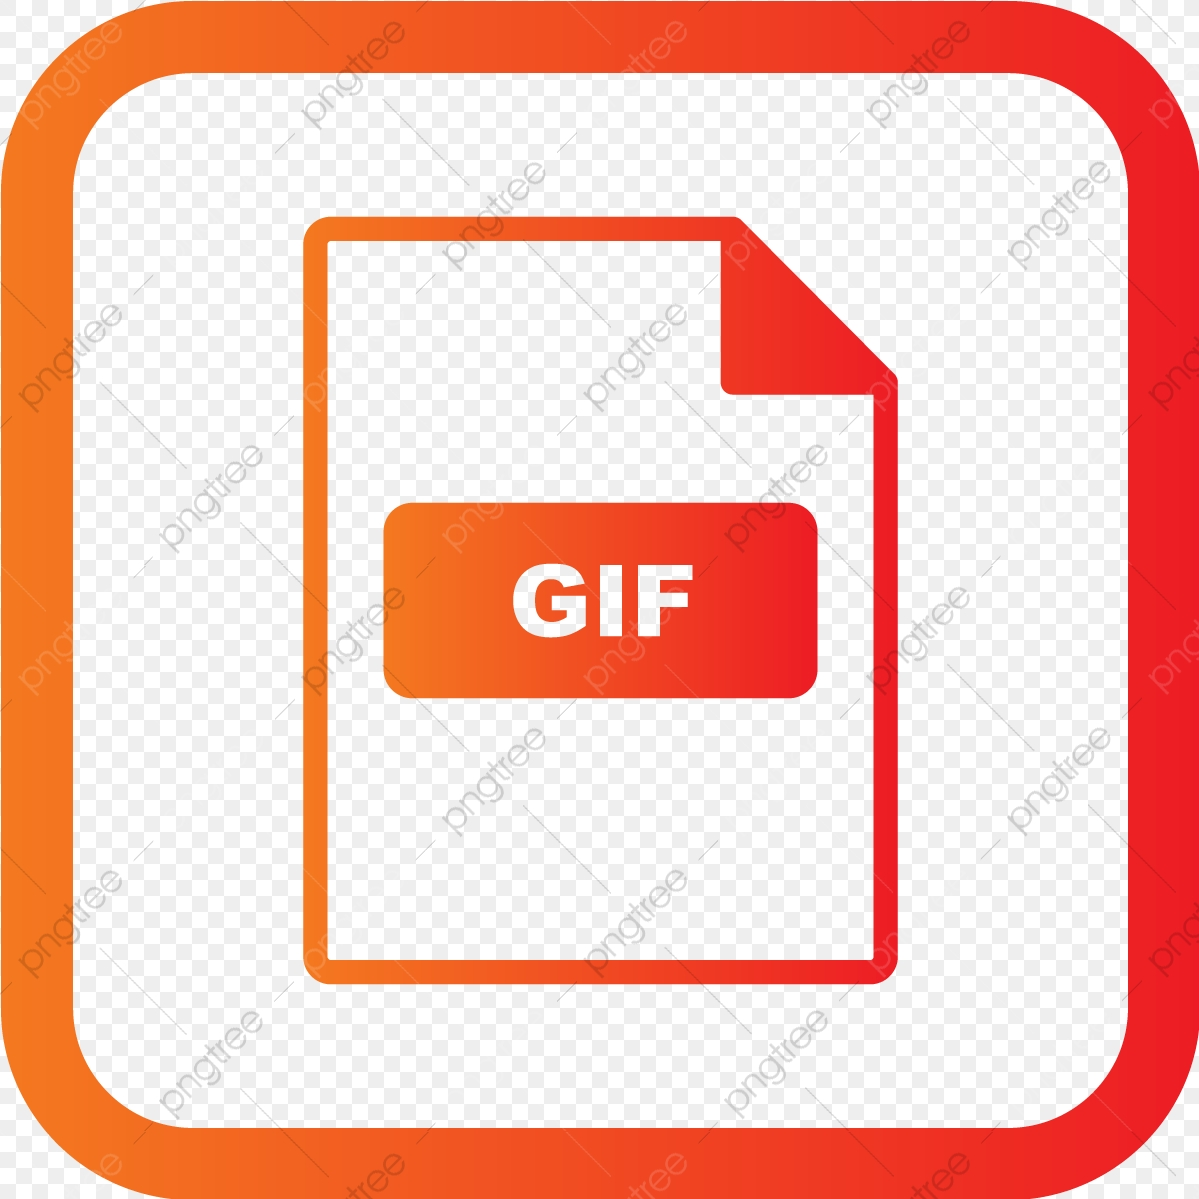 Gif Png Images Vector And Psd Files Free Download On Pngtree